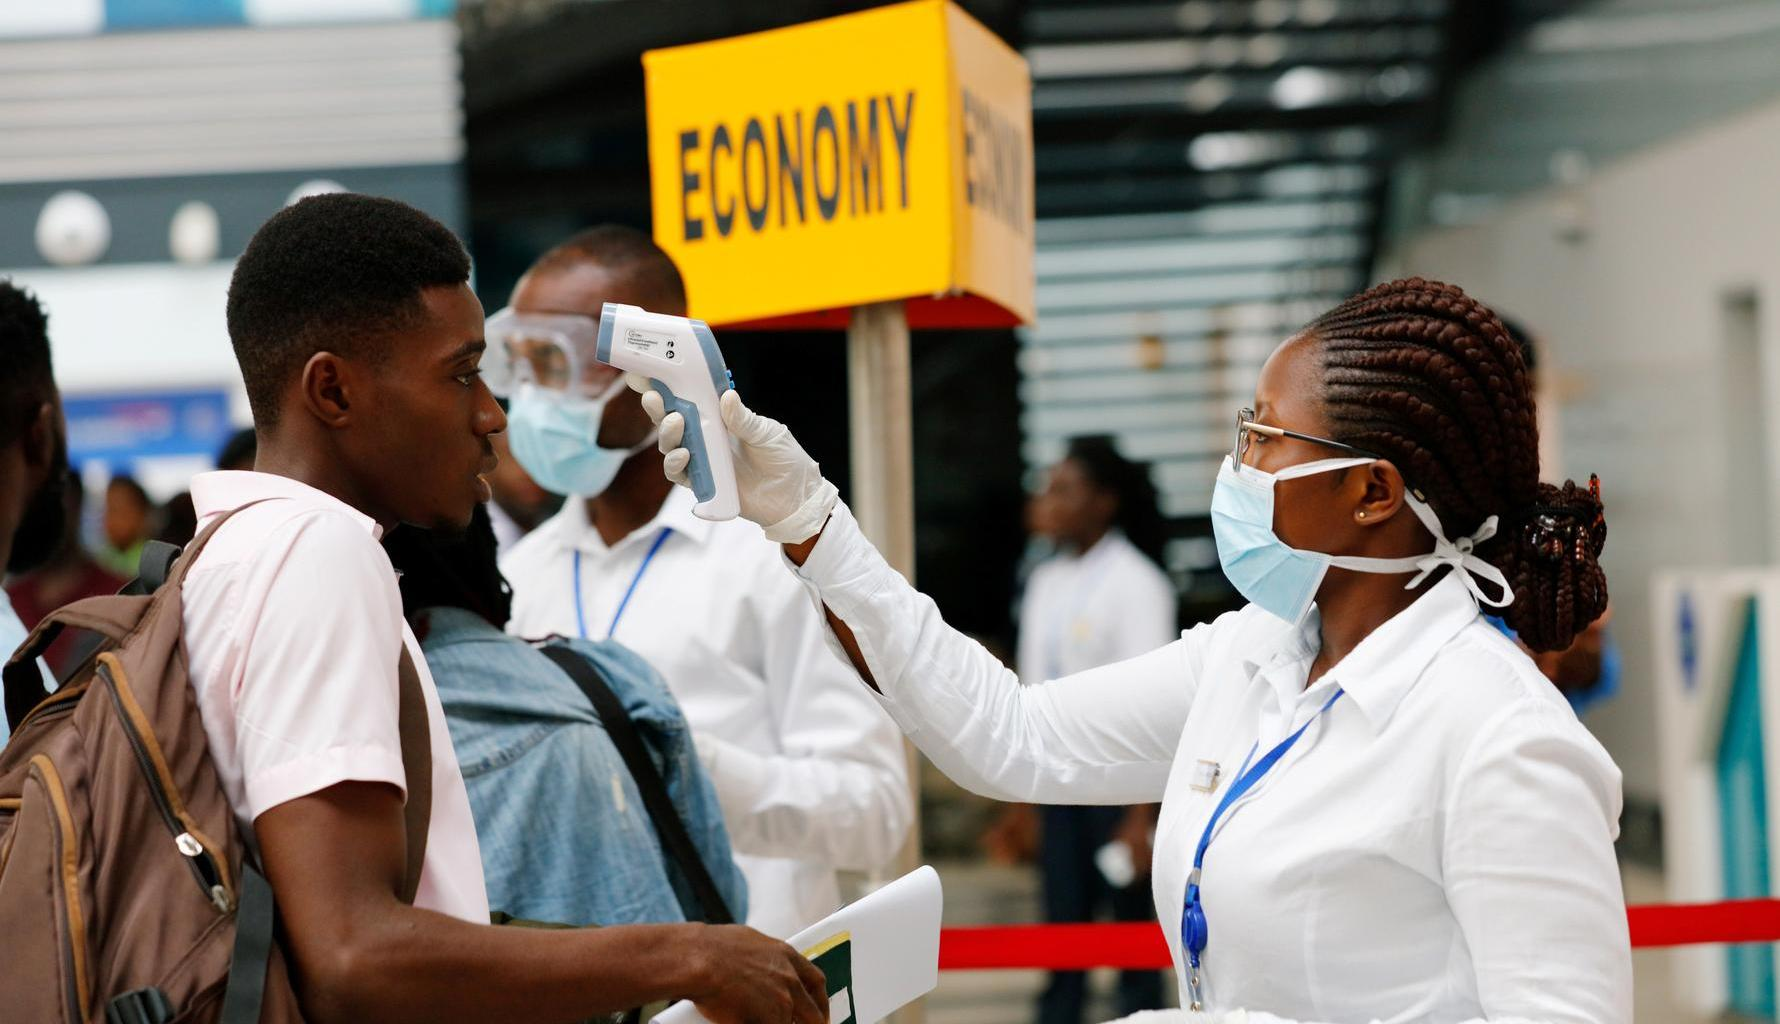 A health worker checks the temperature of a traveller as part of the coronavirus screening procedure at the Kotoka International Airport in Accra